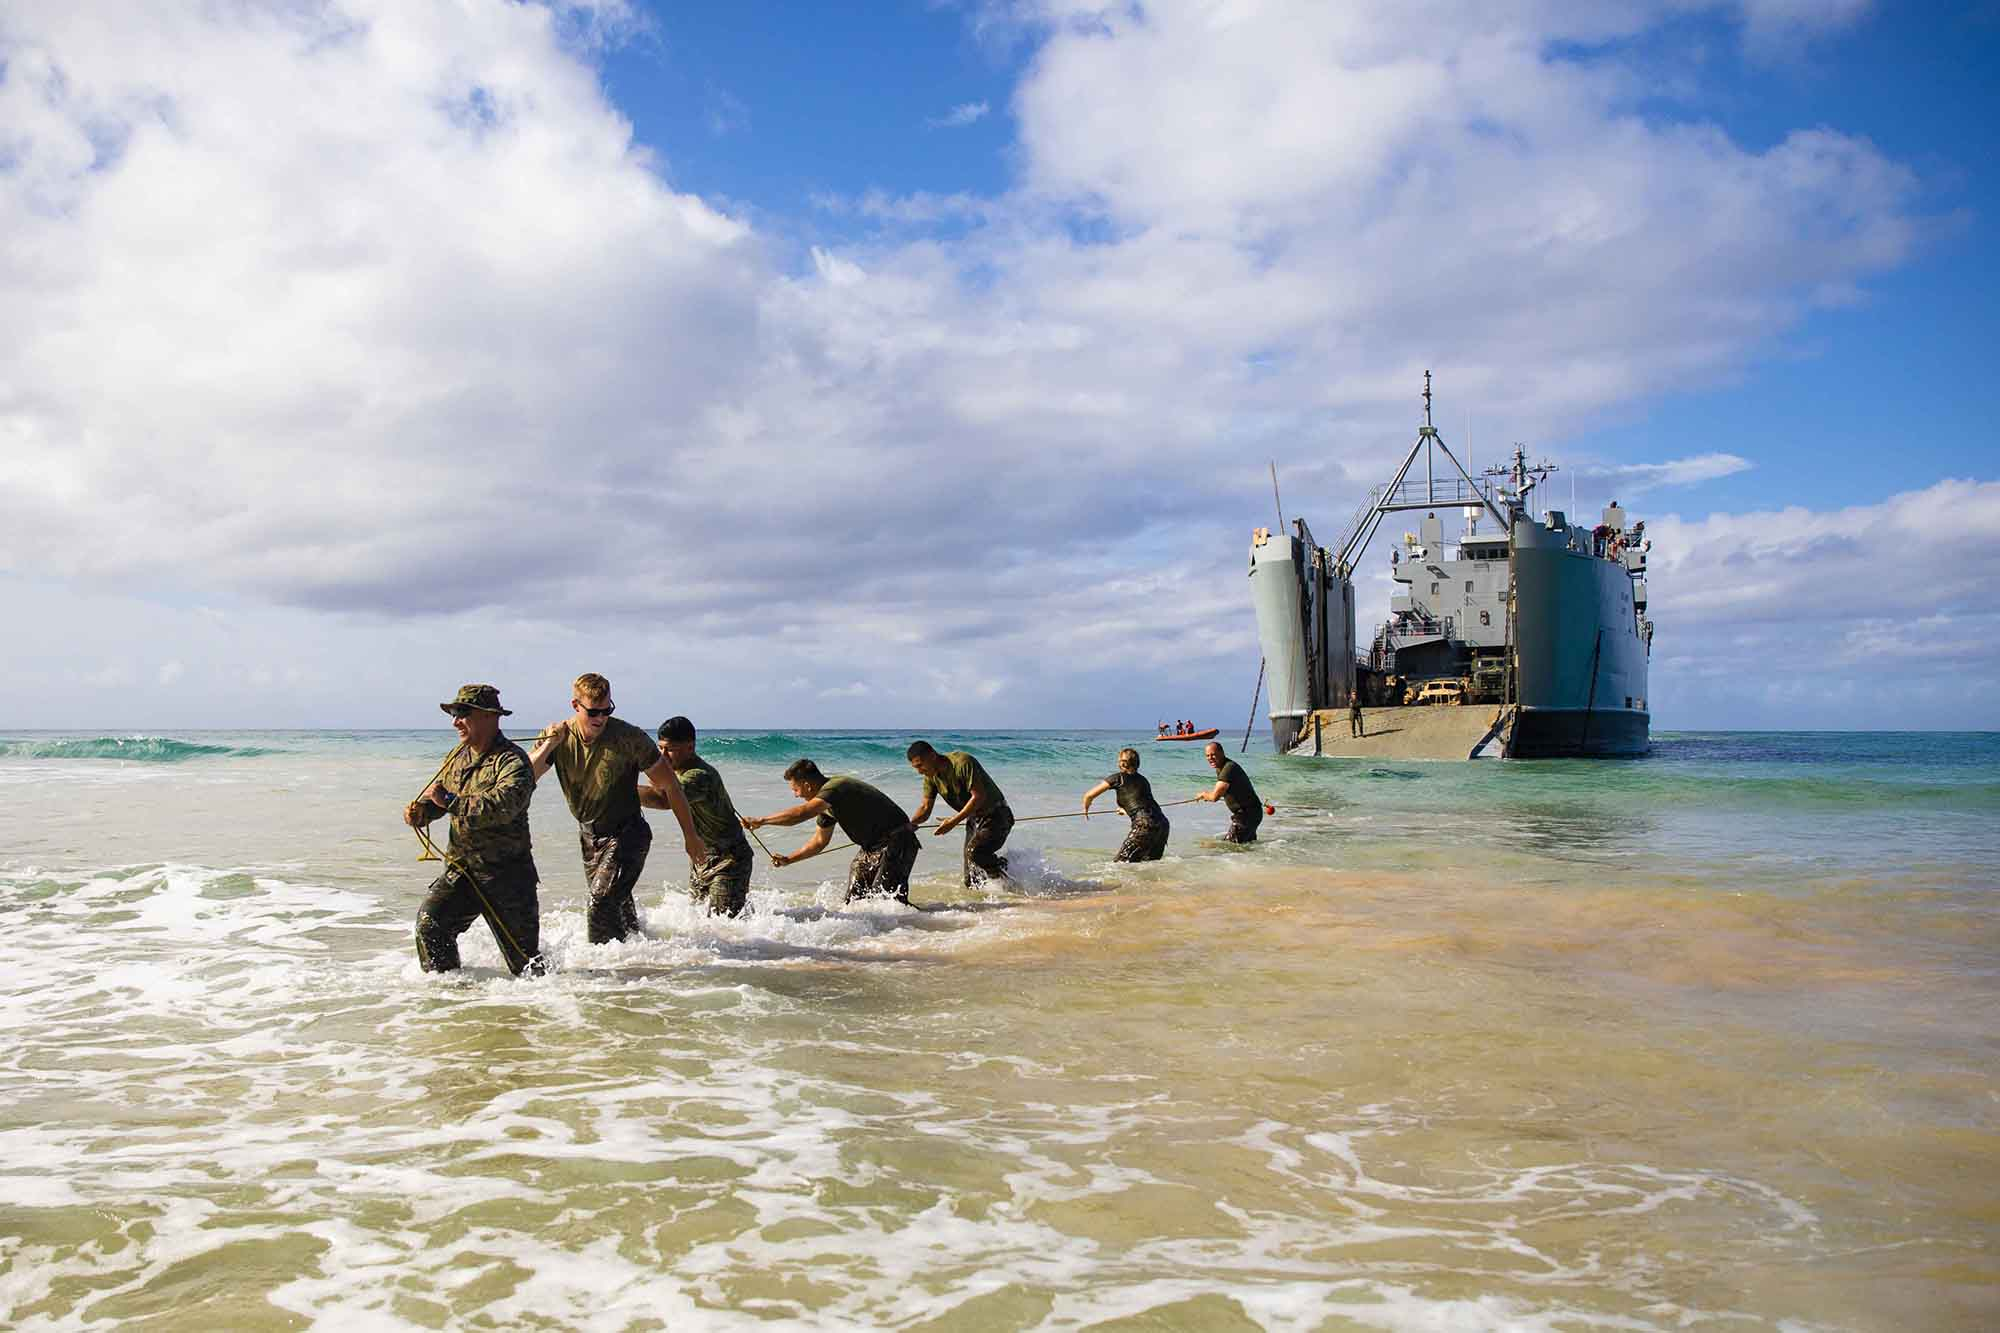 Marines pull a vehicle traction pad from a U.S. Army logistics support vessel during Exercise Spartan Fury 21.1, March 8, 2021, Major's Bay, Pacific Missile Range Facility, Kauai, Hawaii. (Lance Cpl. Brandon Aultman/Marine Corps)